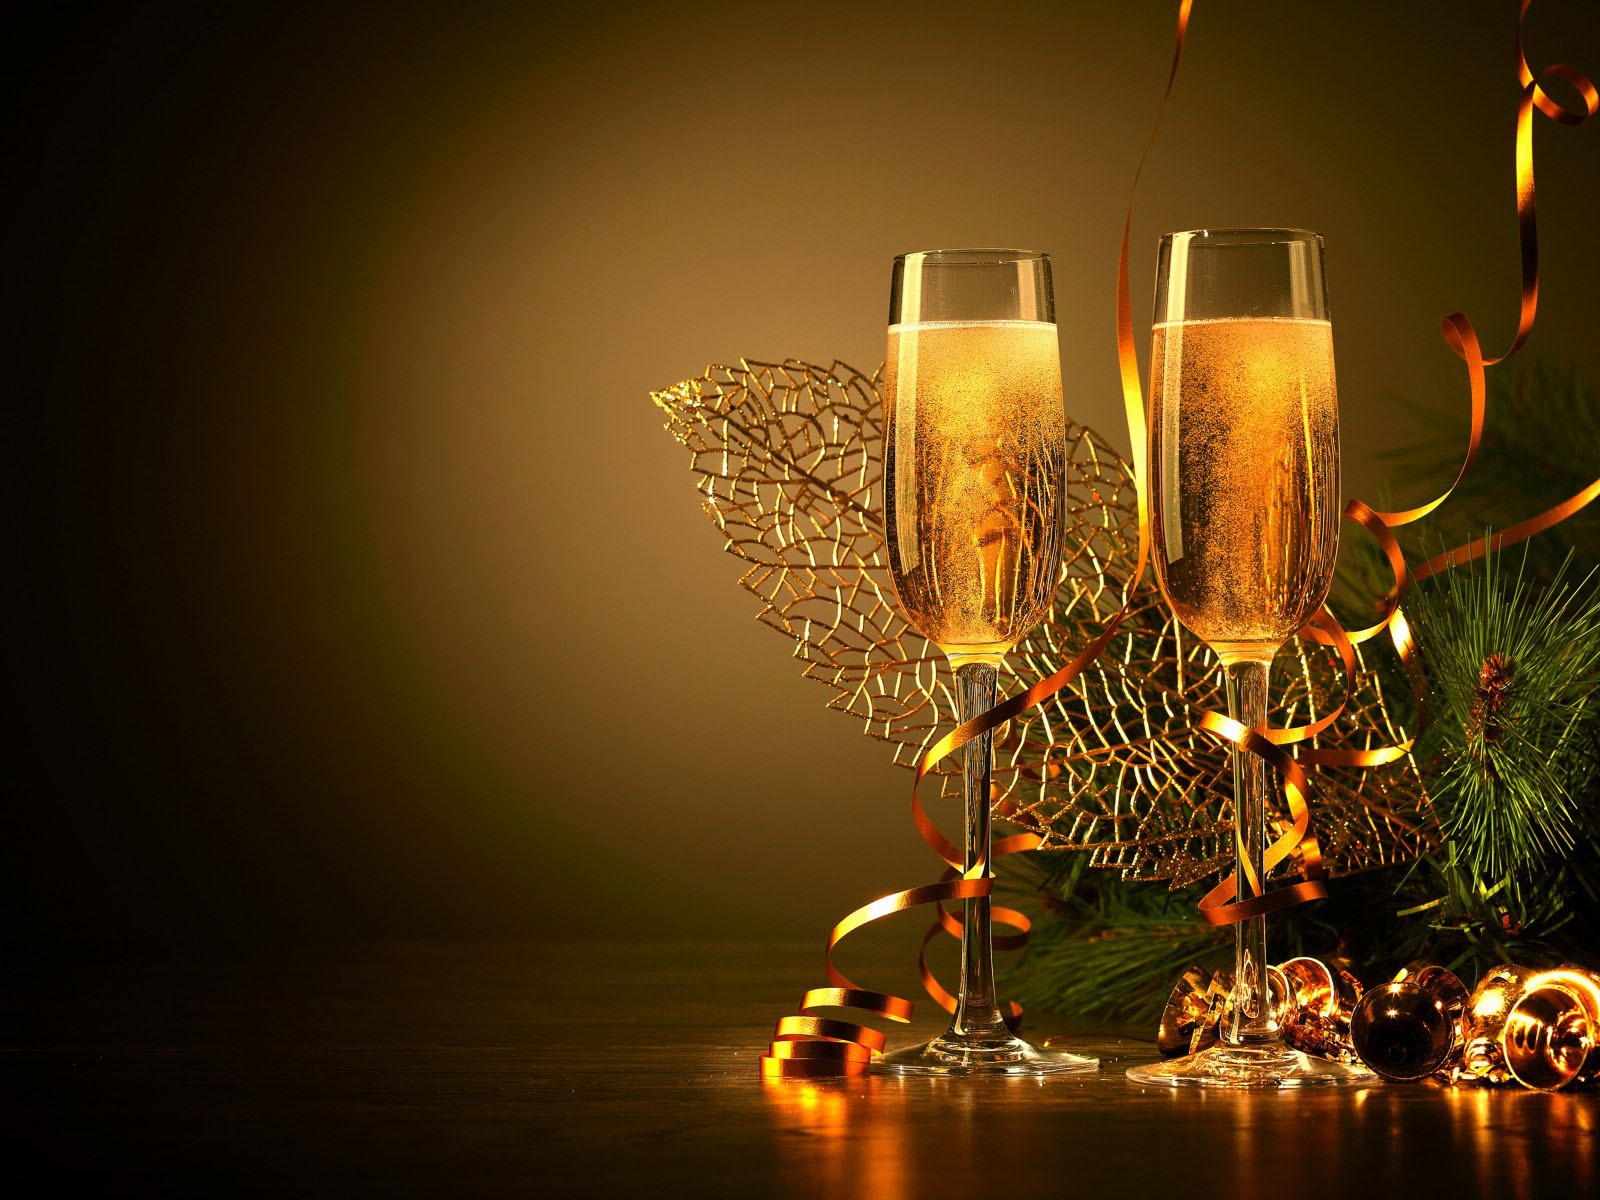 New Year 2016 Desktop Background Wallpapers Themes Happy New Year 1600x1200